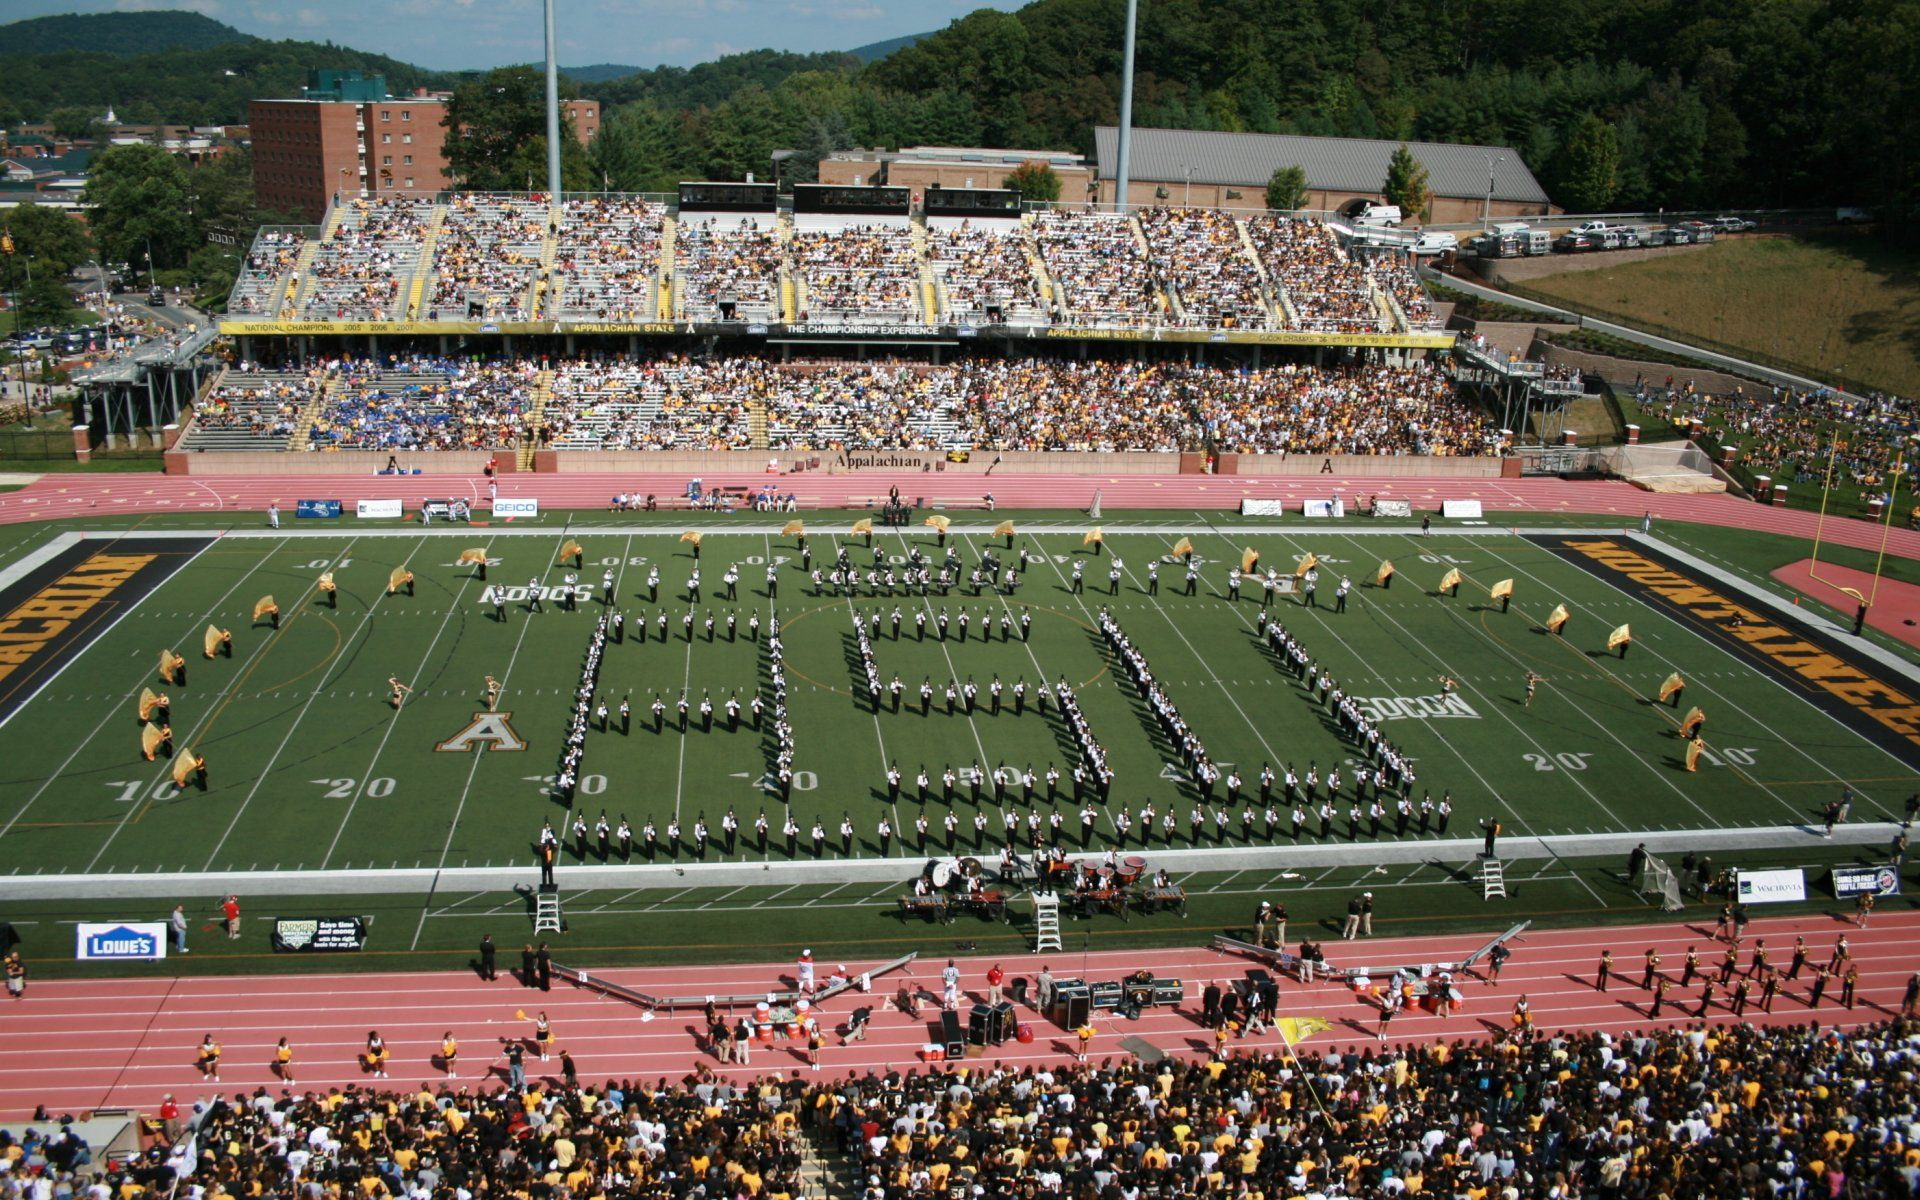 Appalachian State University Football Displaying 19 Images For Appalachian State Football Stadium Appalachian State Football Football Stadiums Appalachian